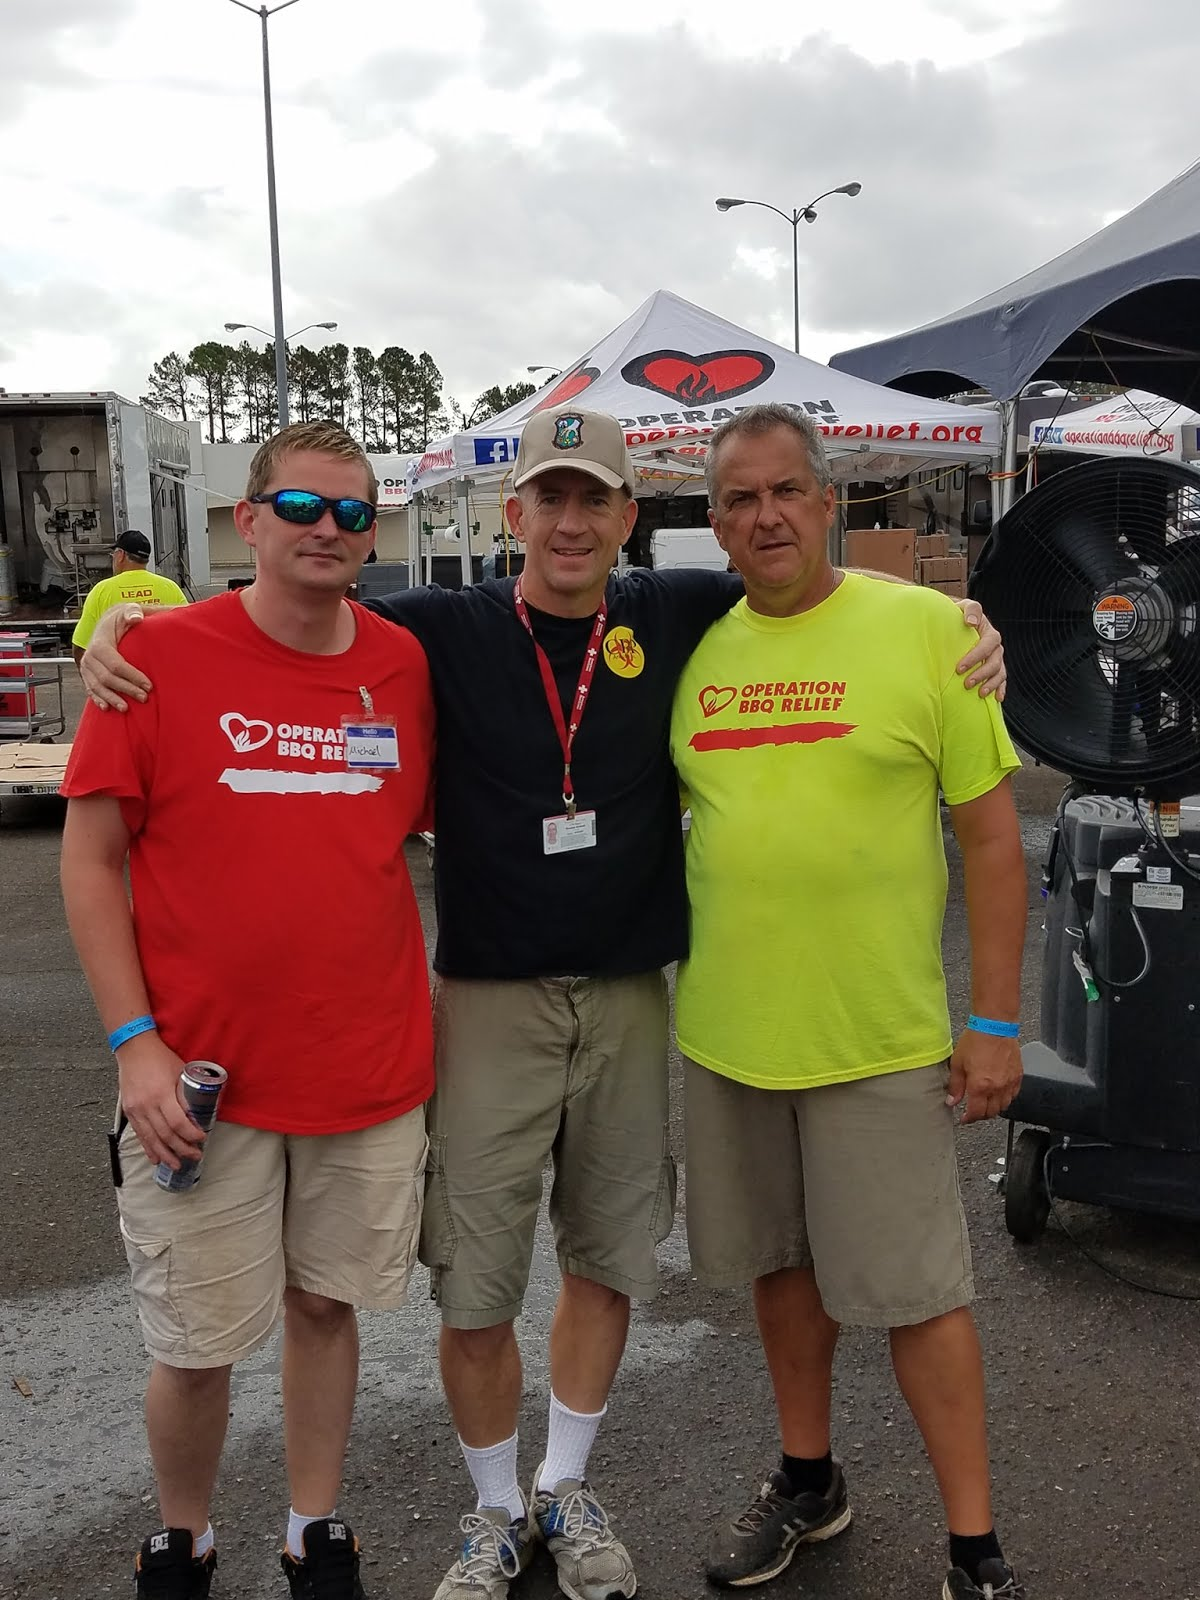 Thomas Q Kimball of Ridgefield, Connecticut meeting up with two of the Operation BBQ Relief staff